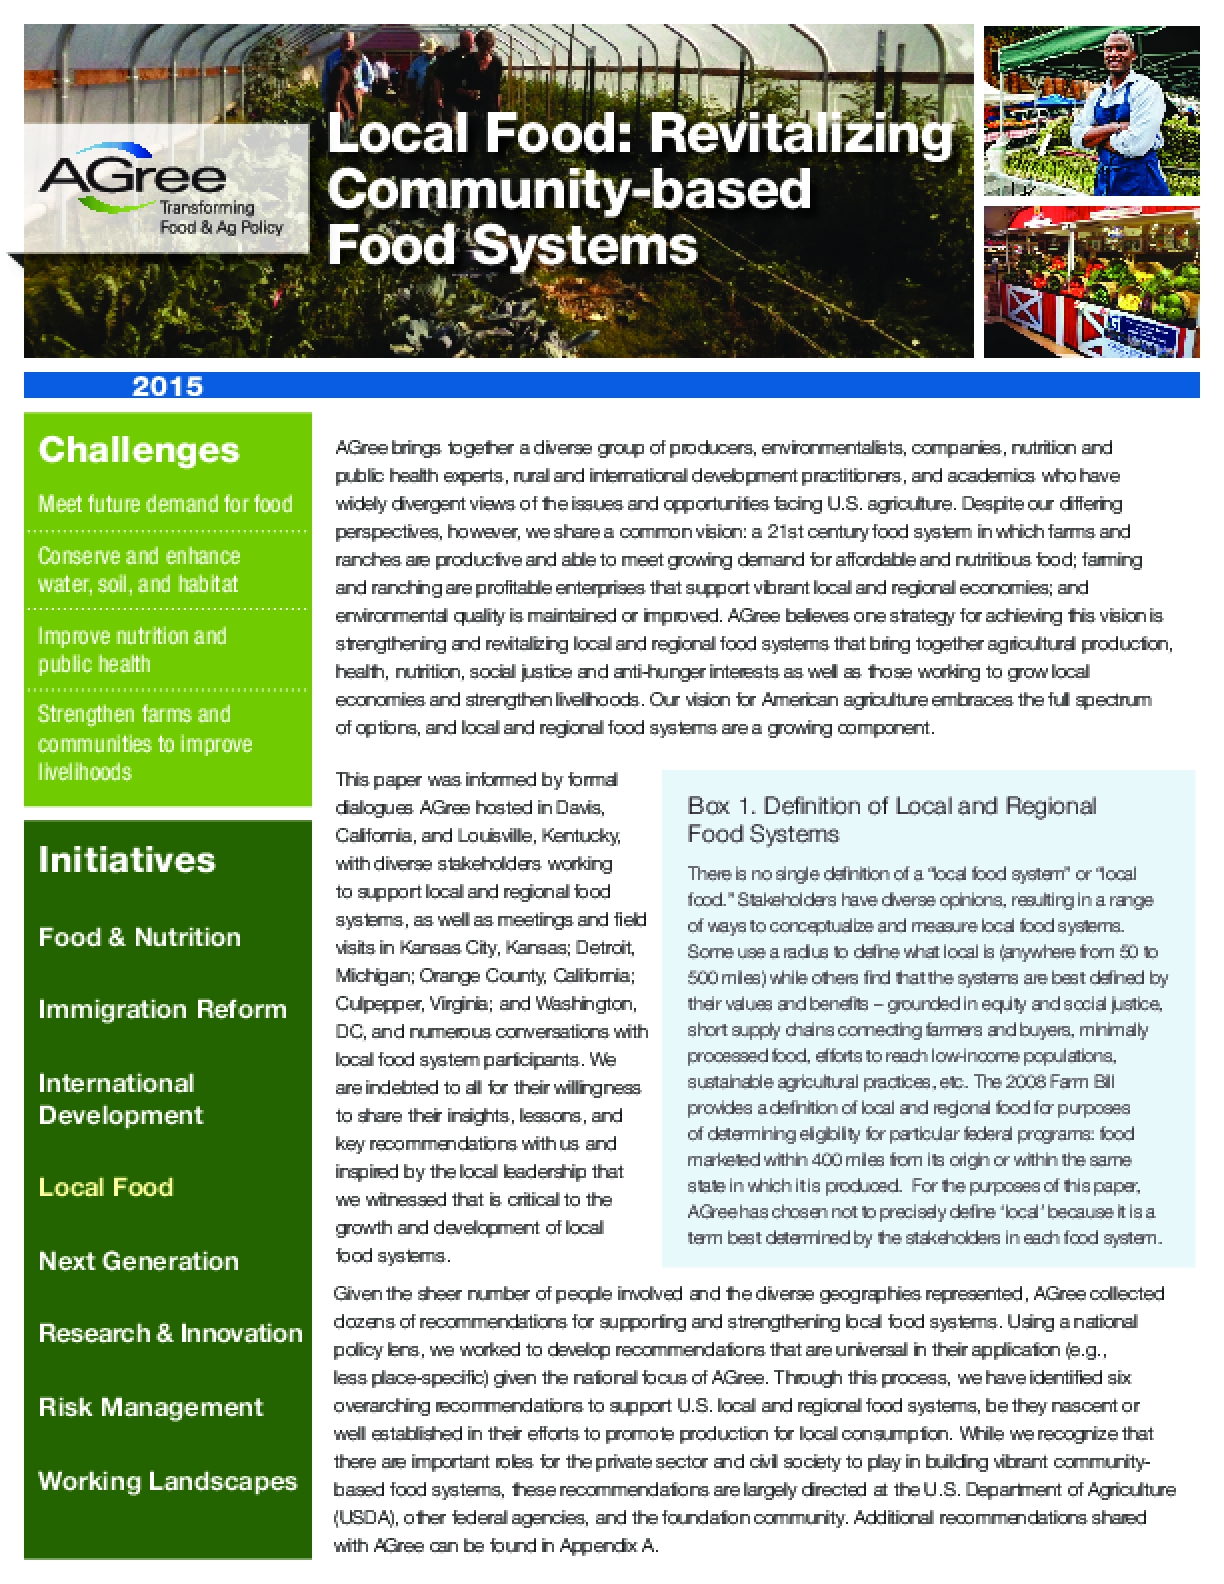 Local Food: Revitalizing Community-based Food Systems